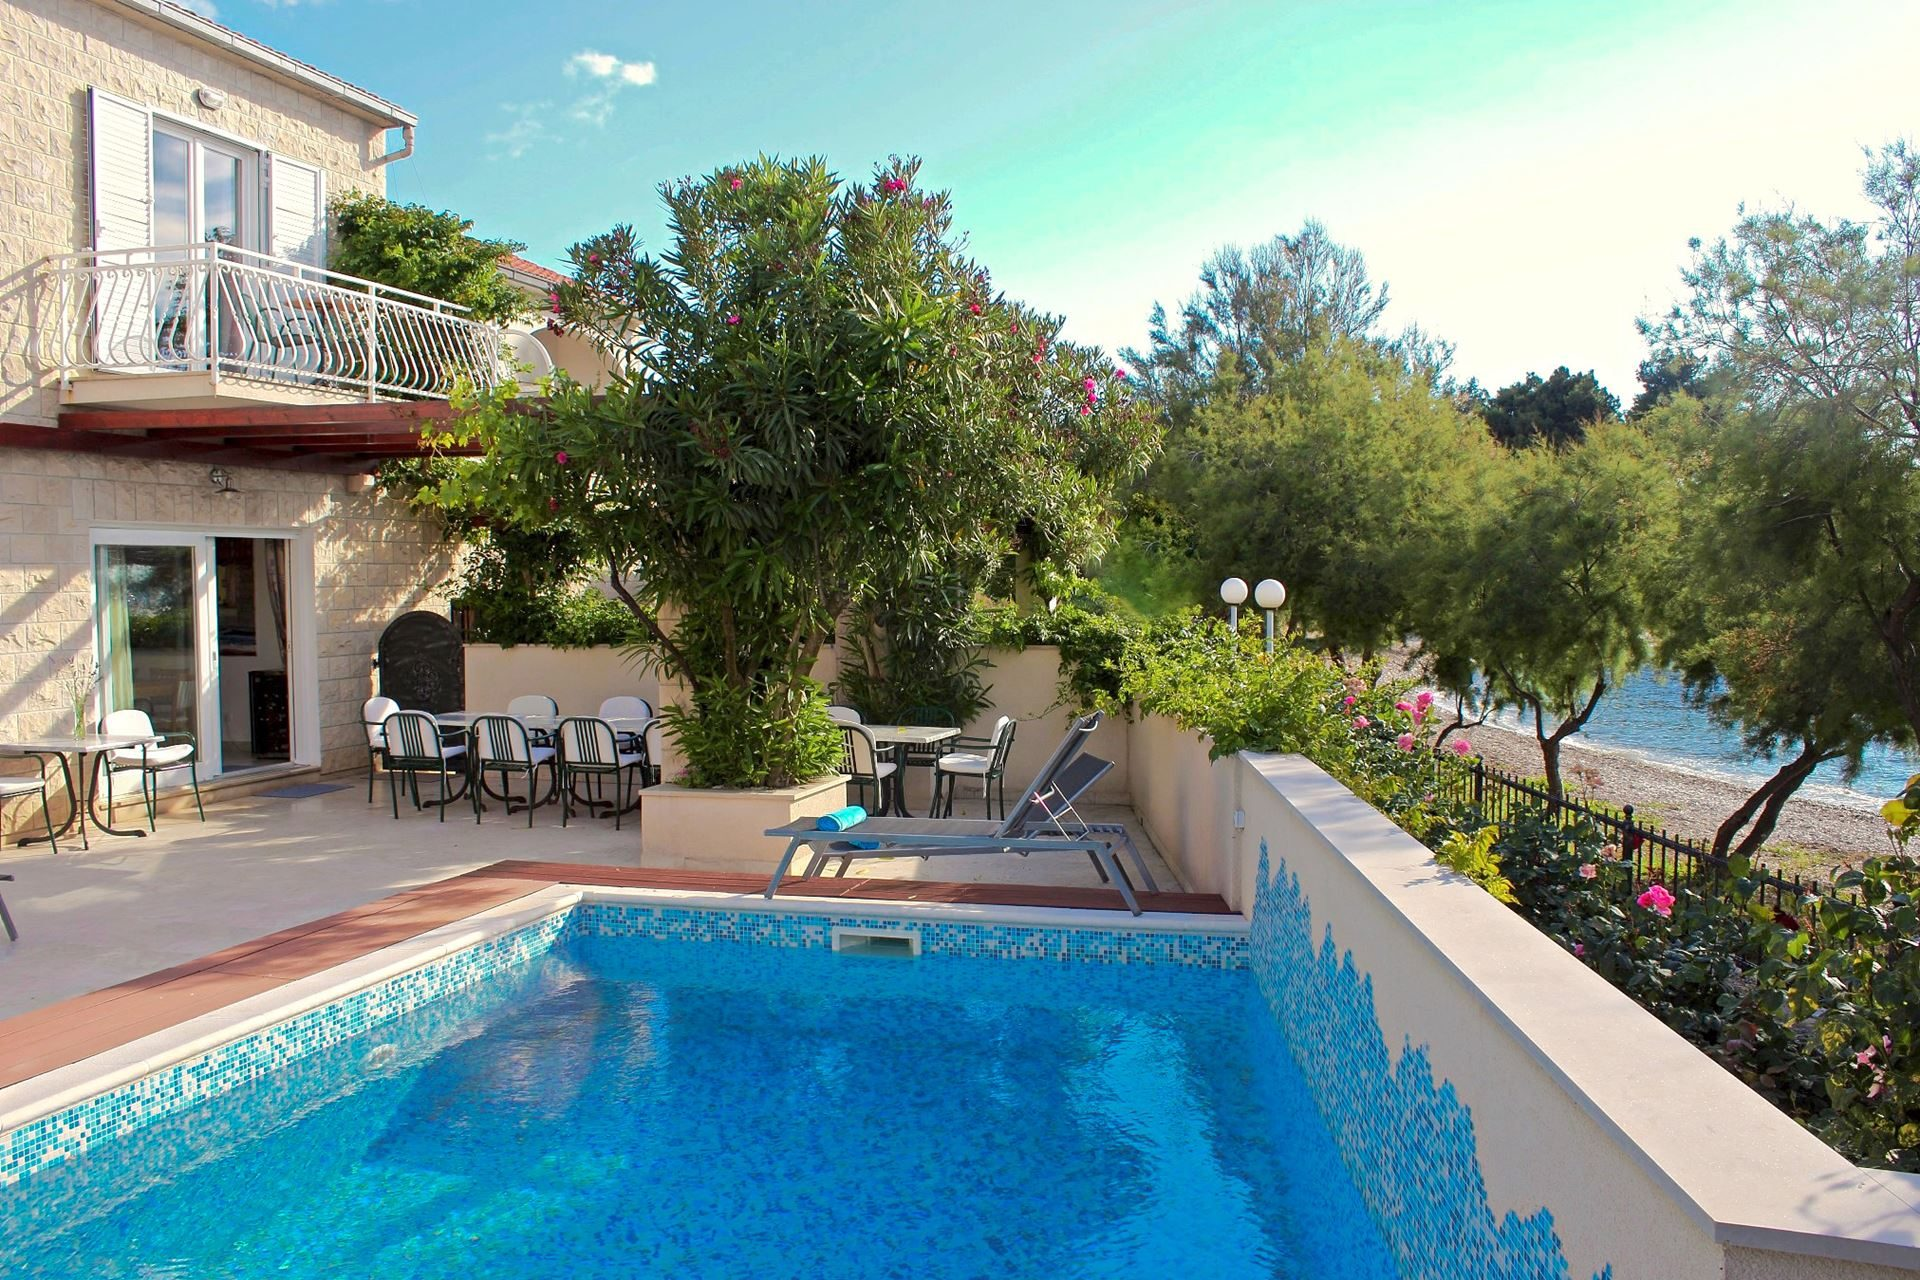 location villa luxe, Croatie, CROBRA 312